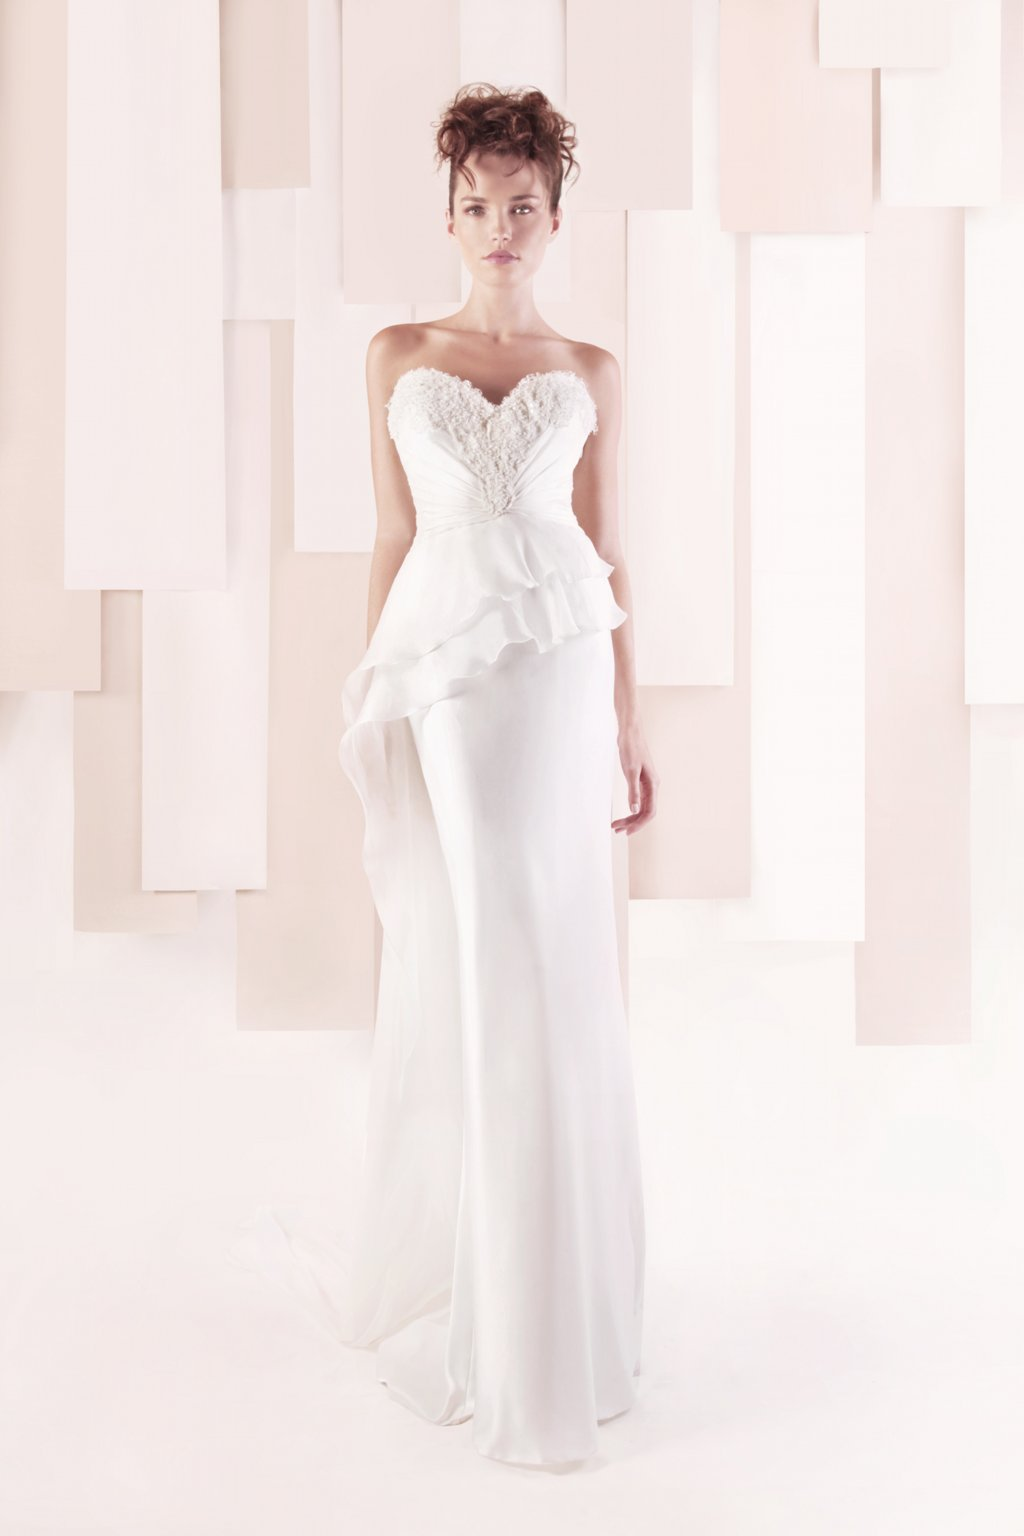 Wedding Dress by Gemy Maalouf 2013 bridal style 3304